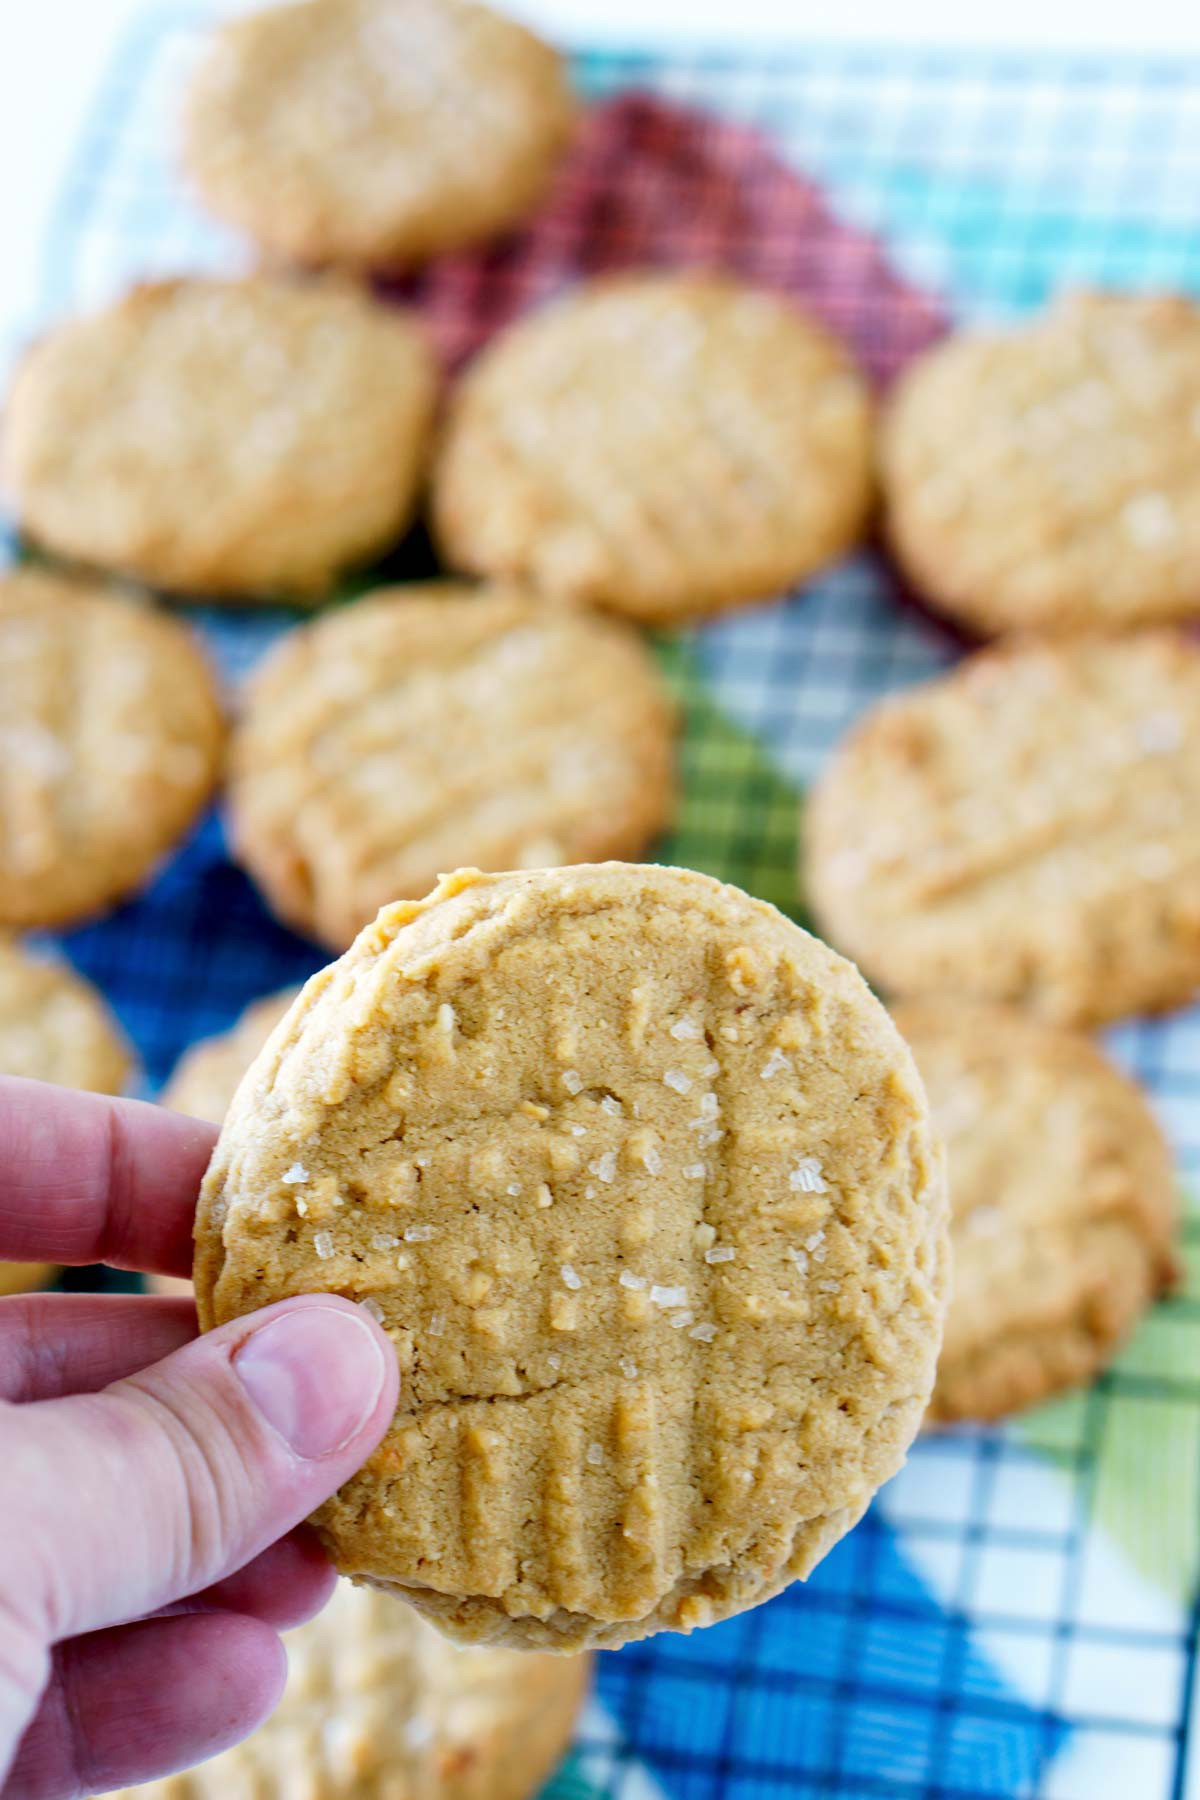 Best Peanut Butter Cookies  Best Peanut Butter Cookies with Chocolate Drizzle • Food